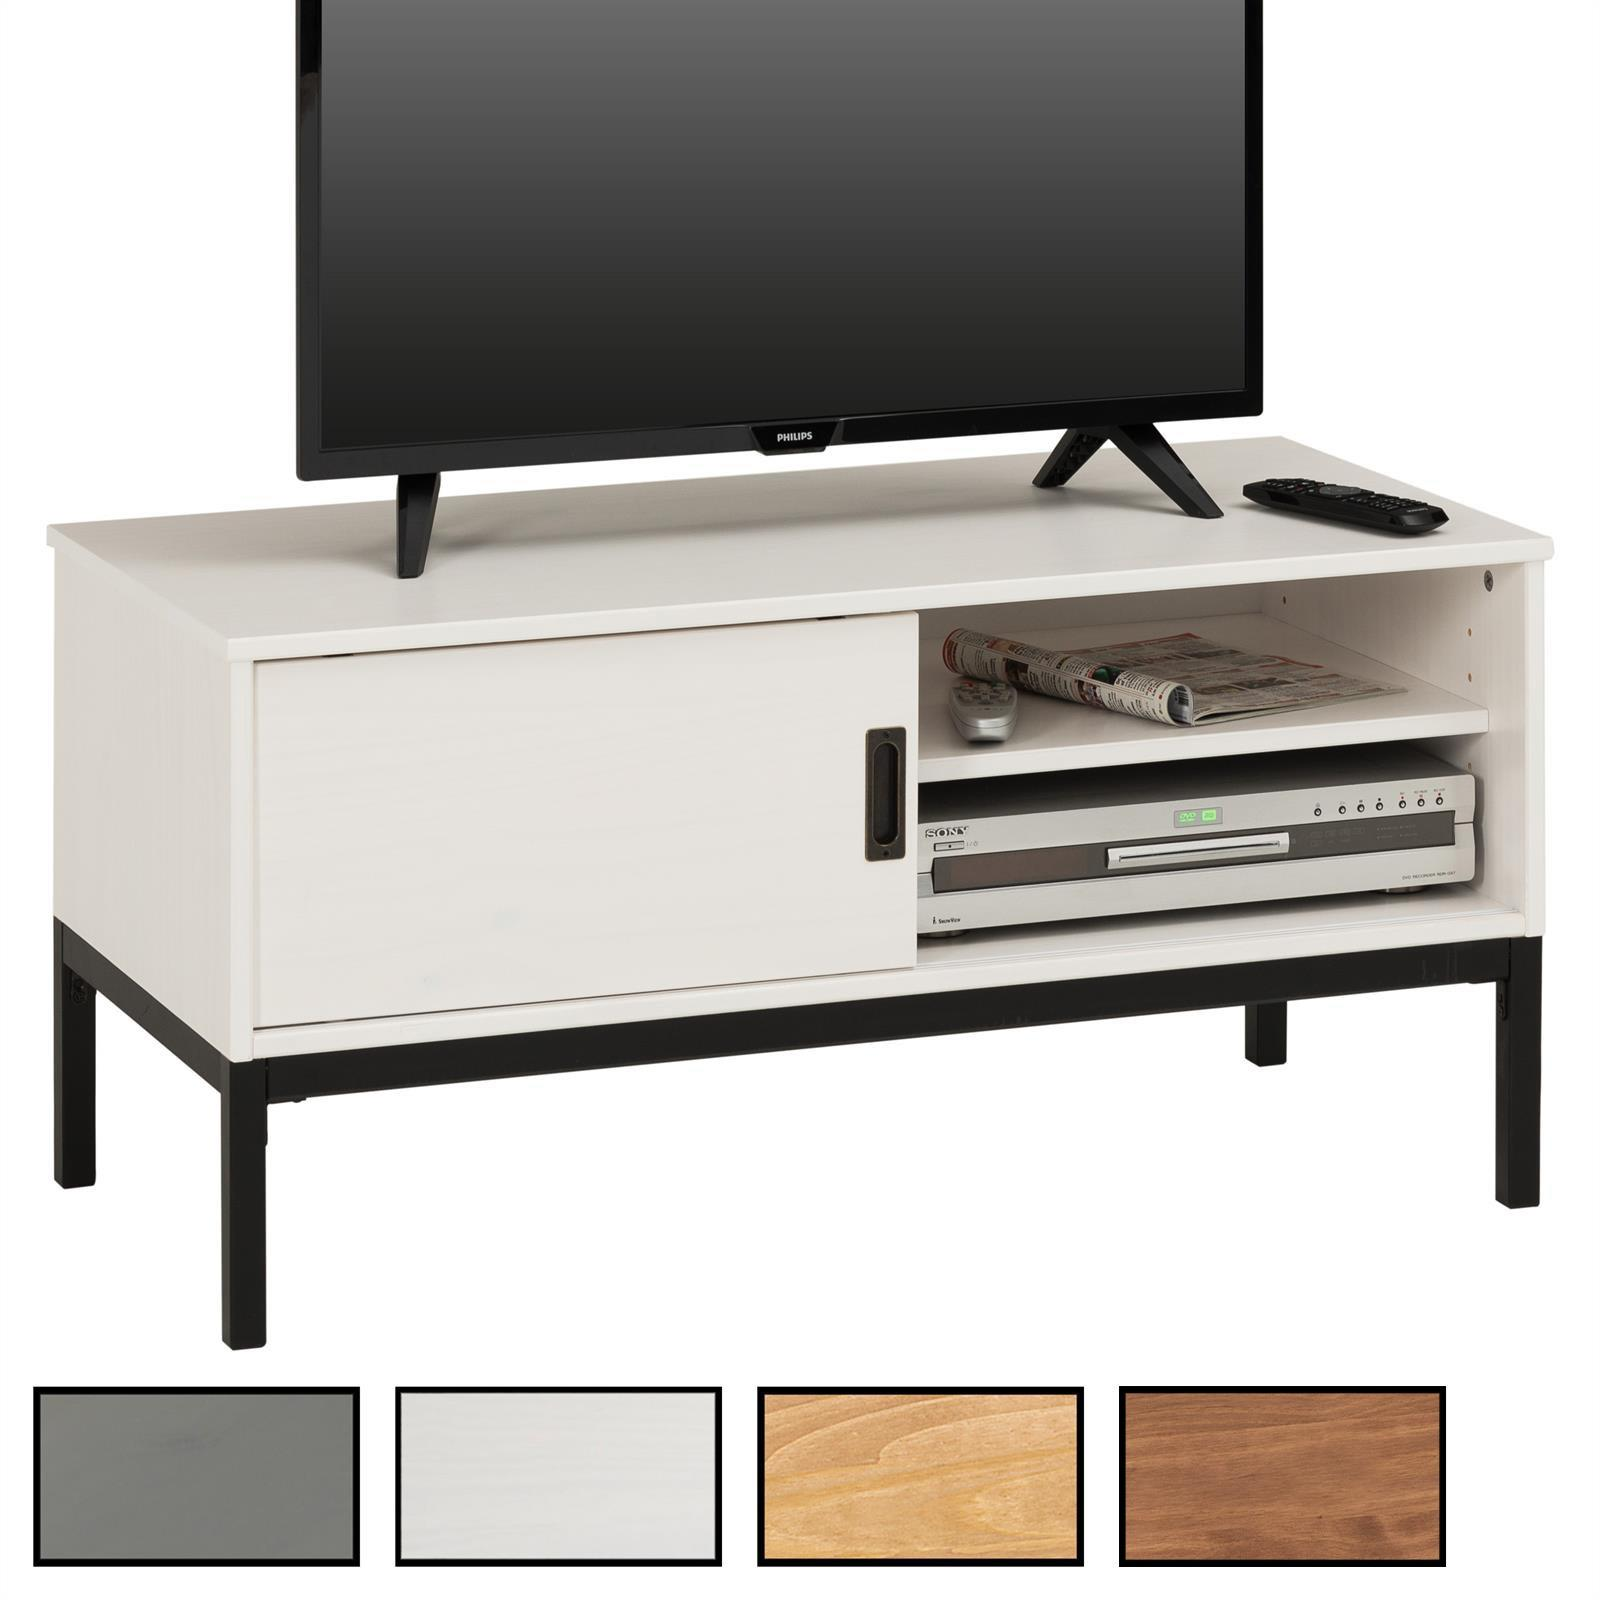 meuble tv selma 1 porte coulissante mobil meubles. Black Bedroom Furniture Sets. Home Design Ideas